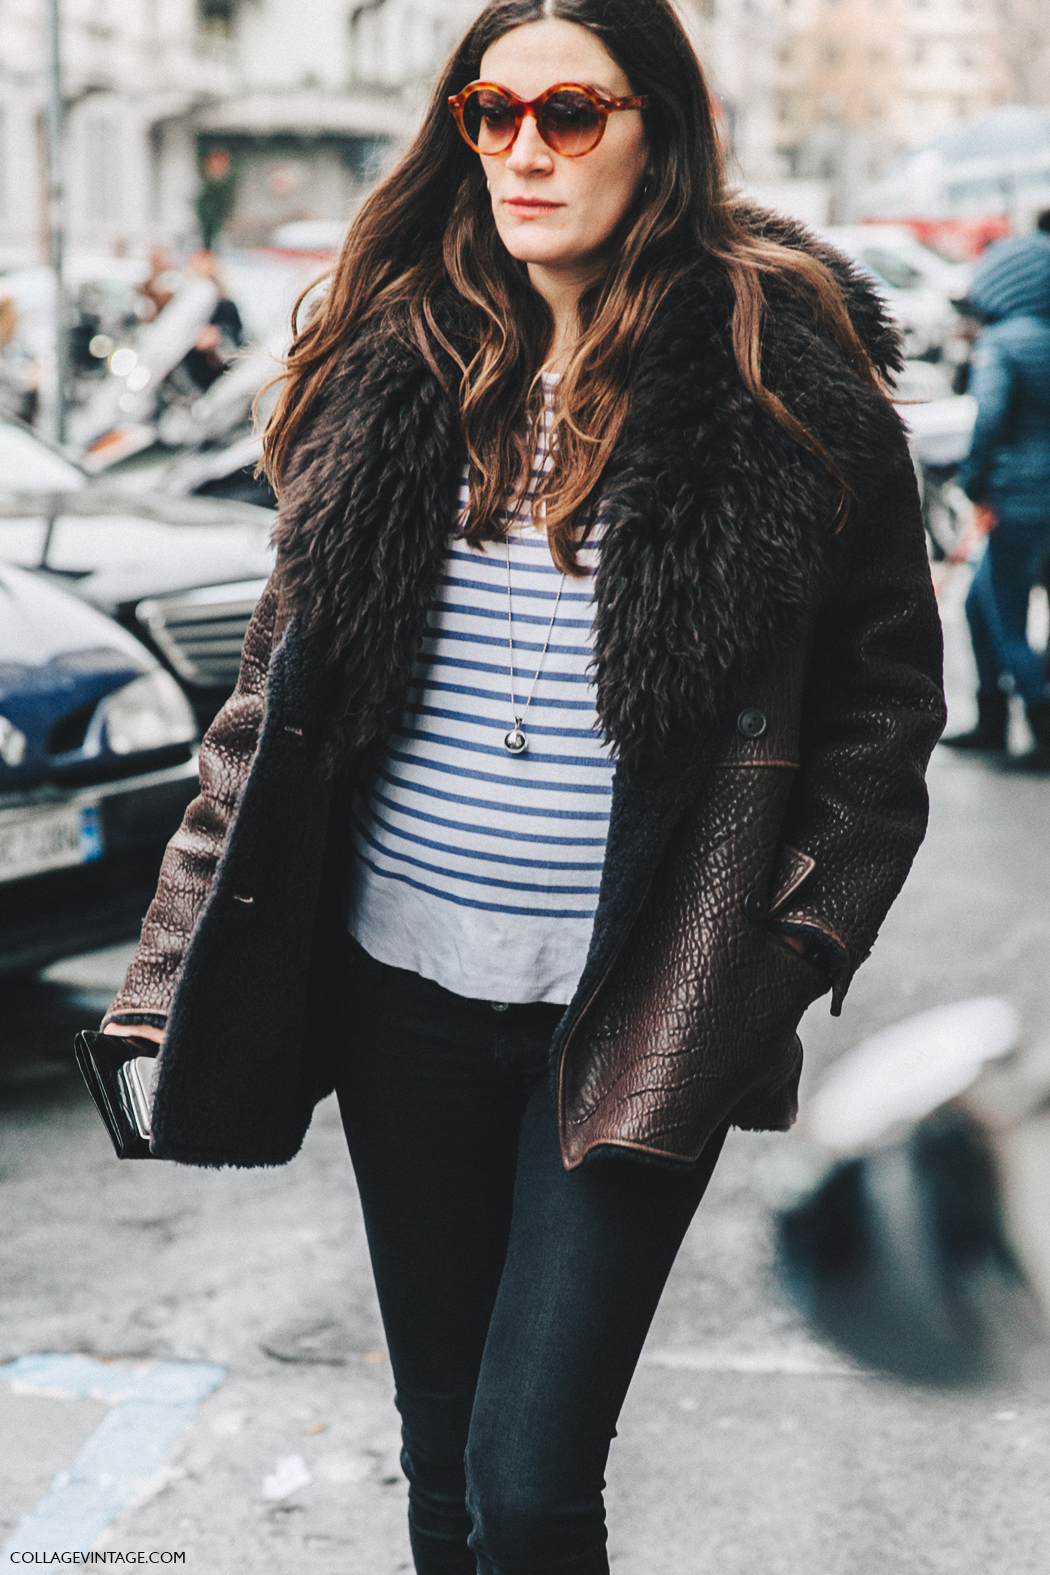 Milan_Fashion_Week_Fall_16-MFW-Street_Style-Collage_Vintage-1